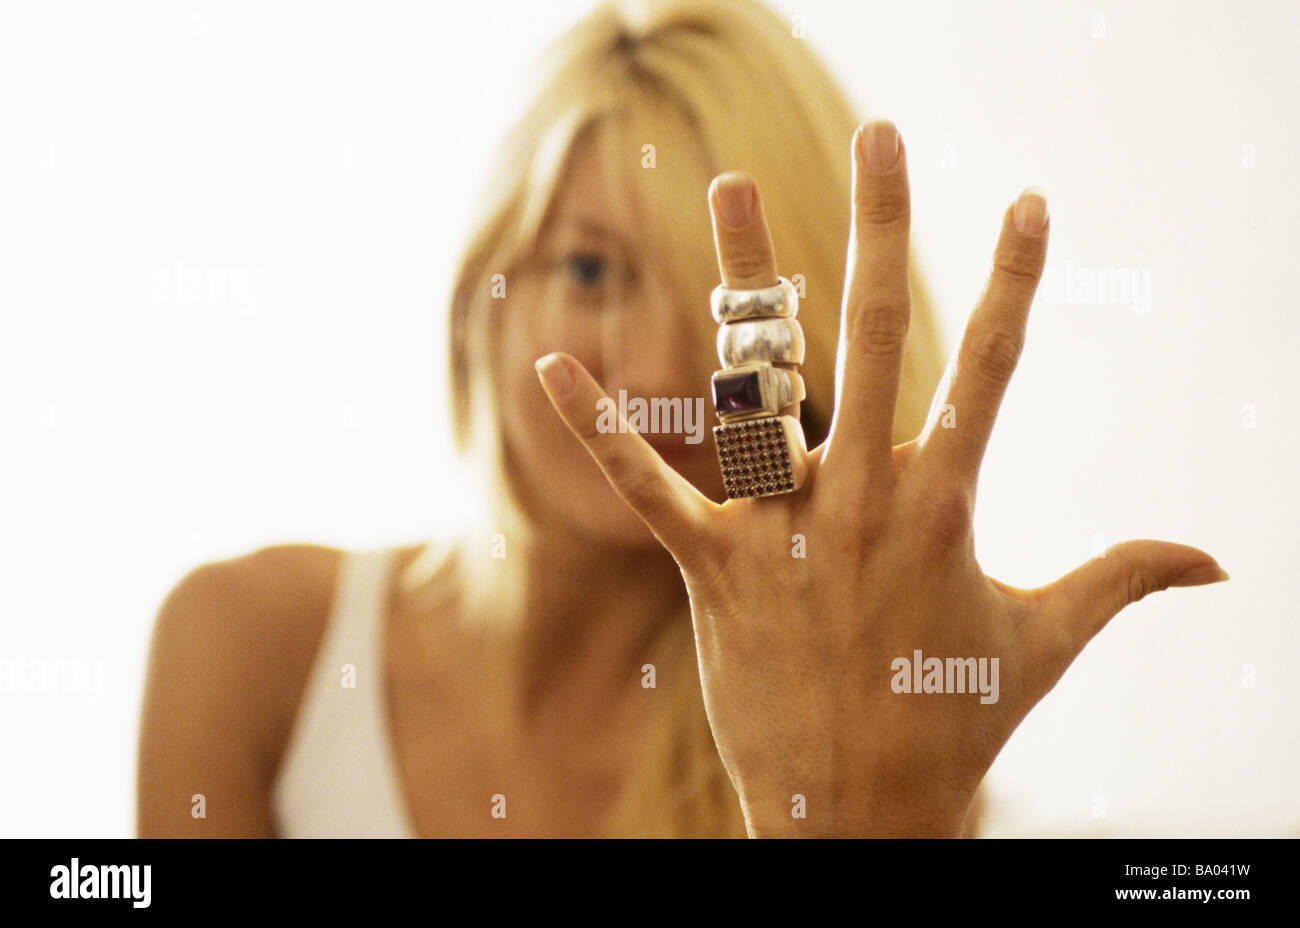 Woman showing many rings on her finger to camera - Stock Image